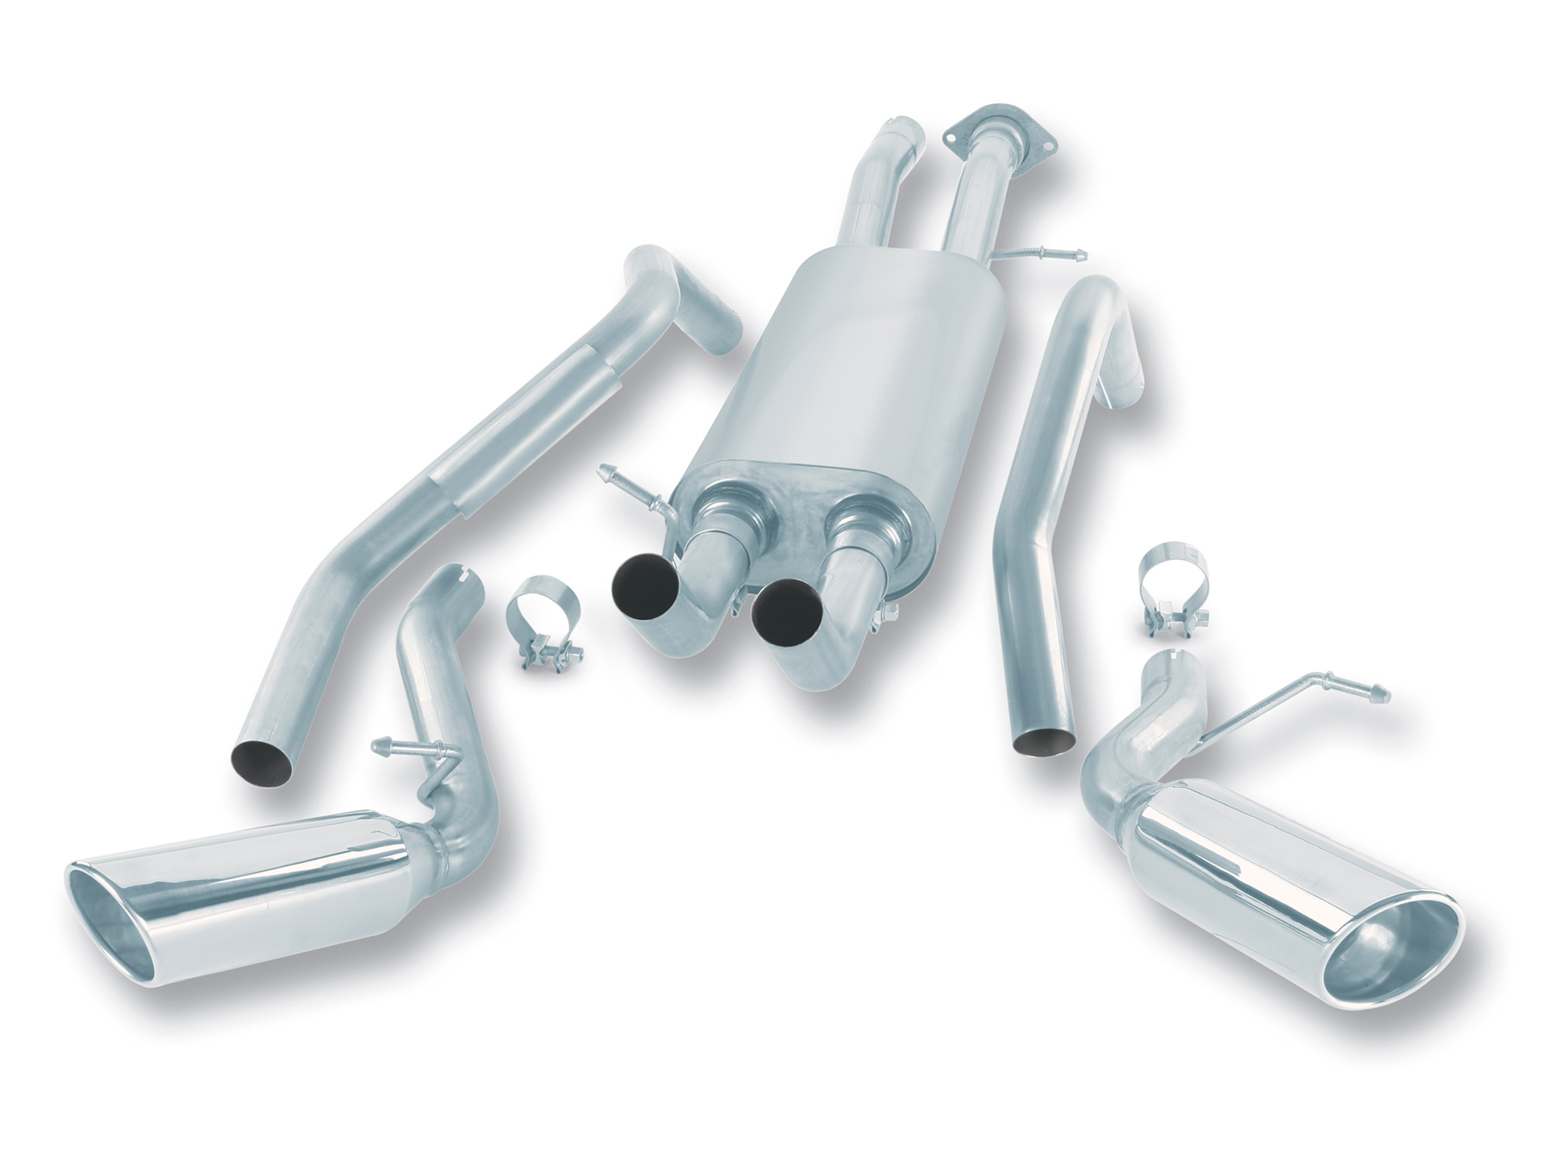 Cadillac Escalade 6.0l 2002-2004 Borla 2.5&#34;, 2.25&#34; Cat-Back Exhaust System - Single Round Rolled Angle-Cut Lined Resonated